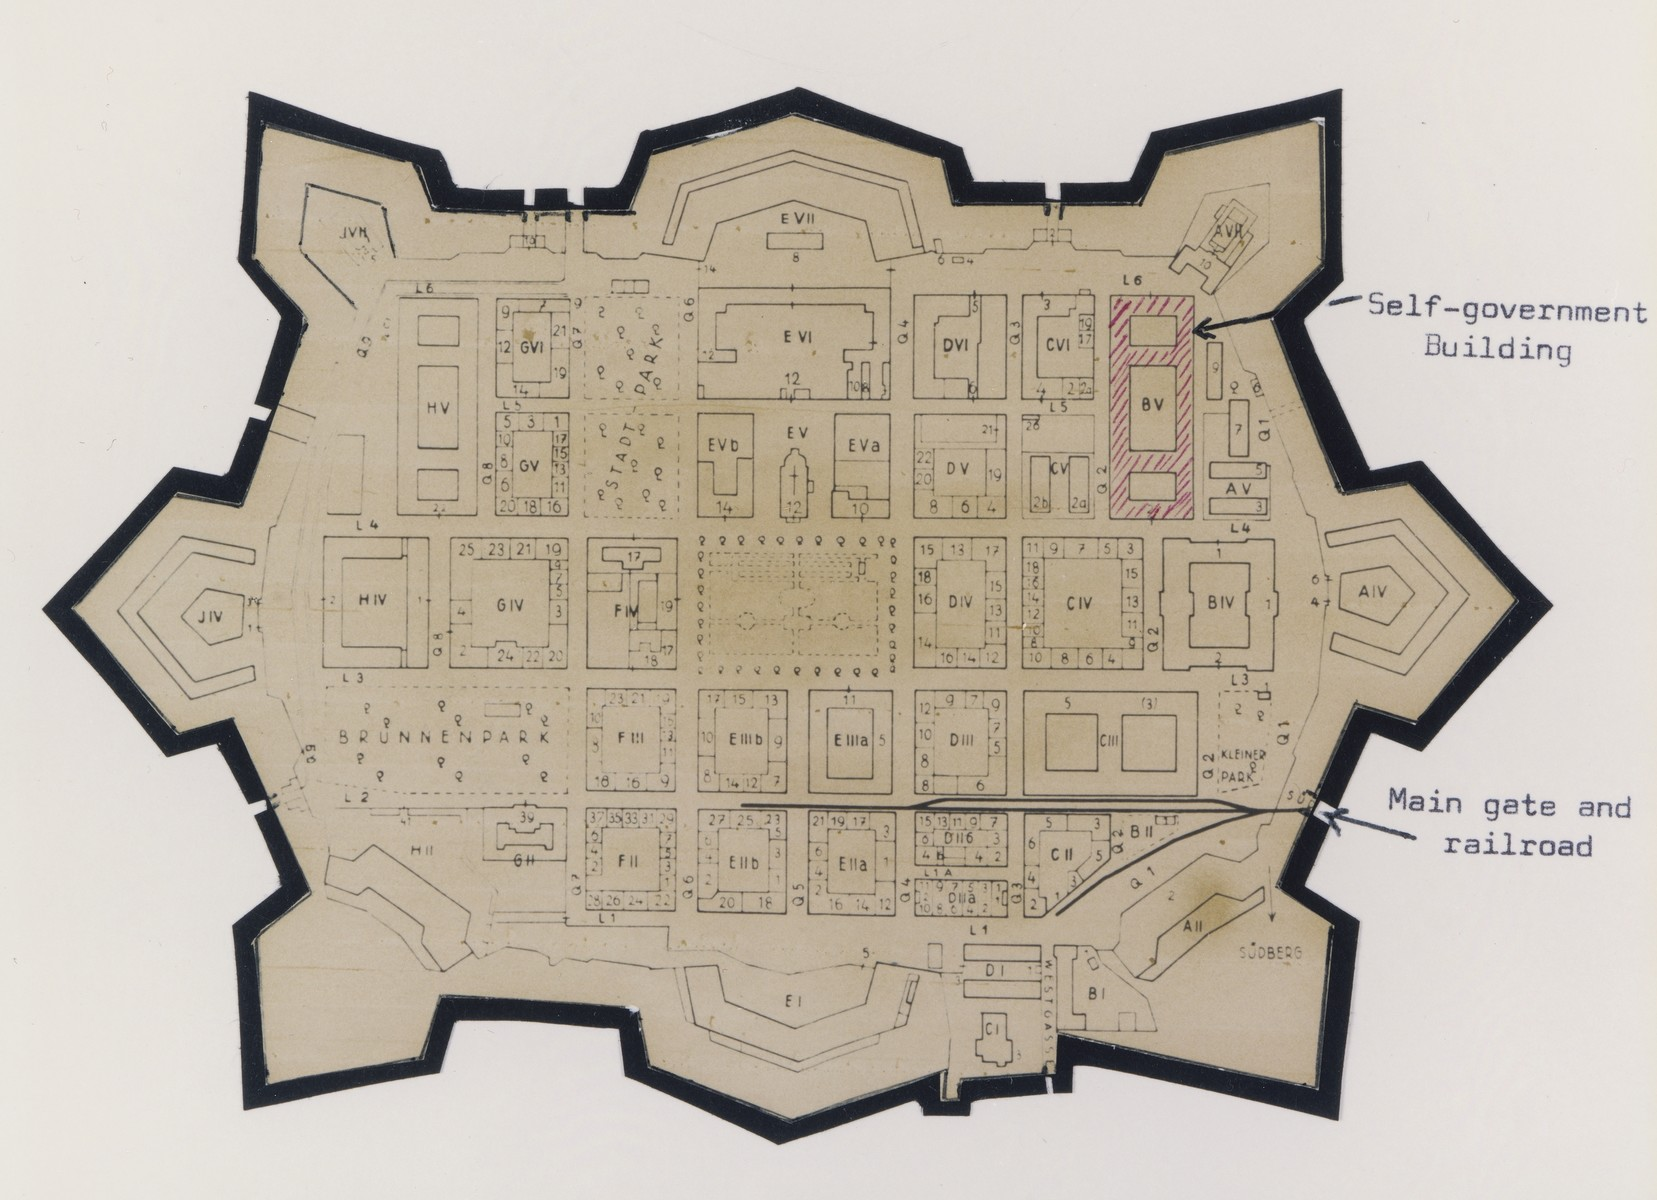 Map of Theresienstadt that was cut out of an original document and mounted on black paper in an album assembled by a survivor.